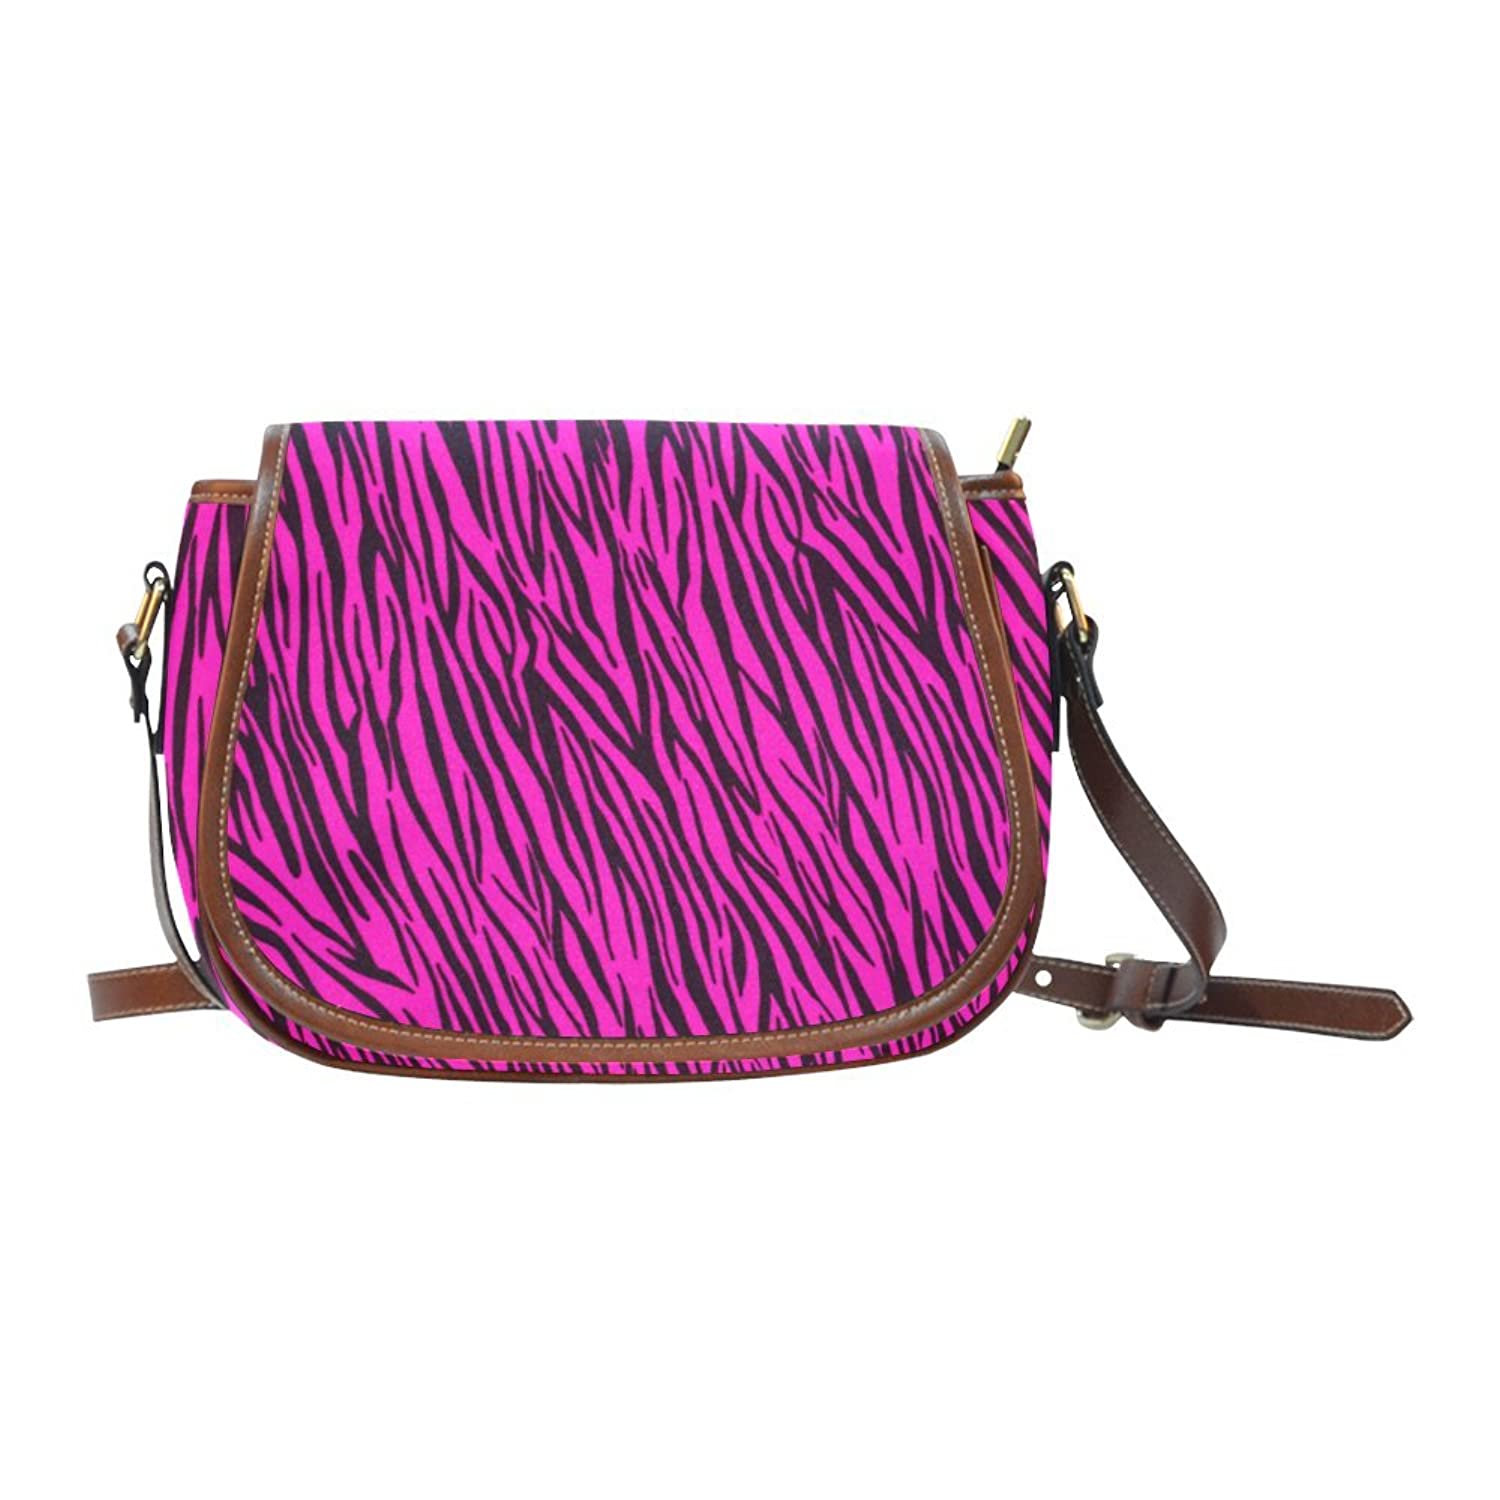 Find Arts Custom Saddle Bag Hot Pink Zebra Stripes Animal Print Fur Saddle Bag Crossbody Bag Small